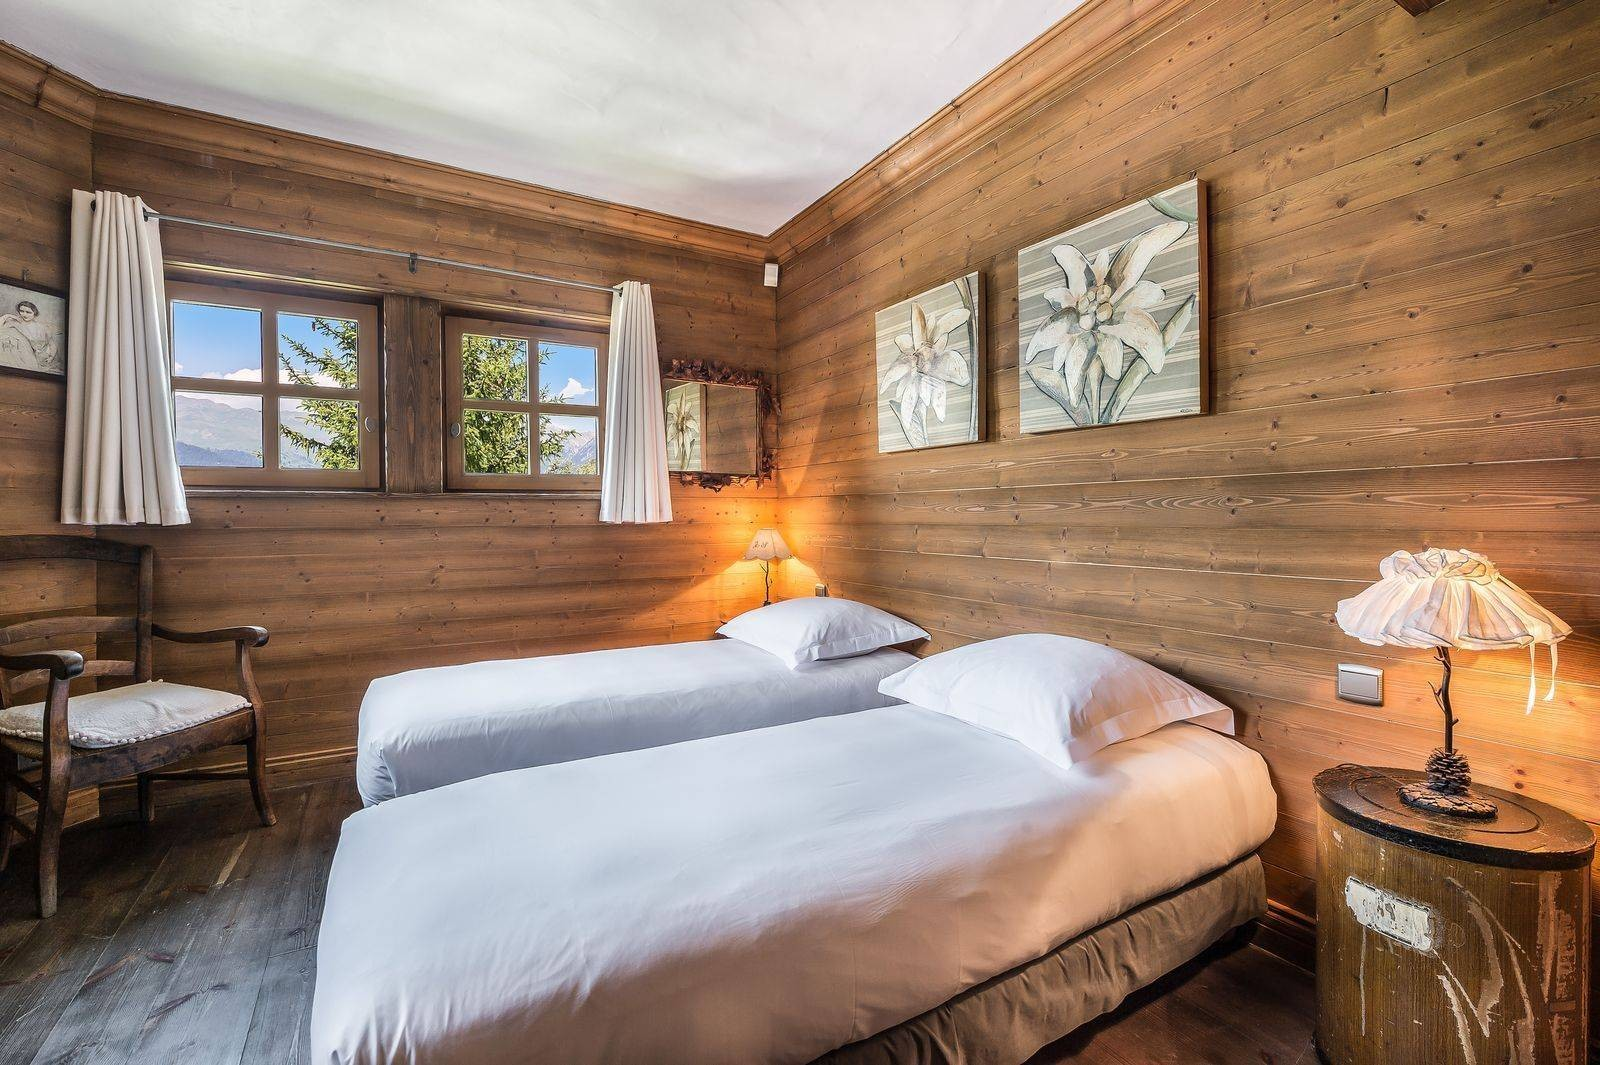 Courchevel 1550 Location Chalet Luxe Tazoy Chambre 6